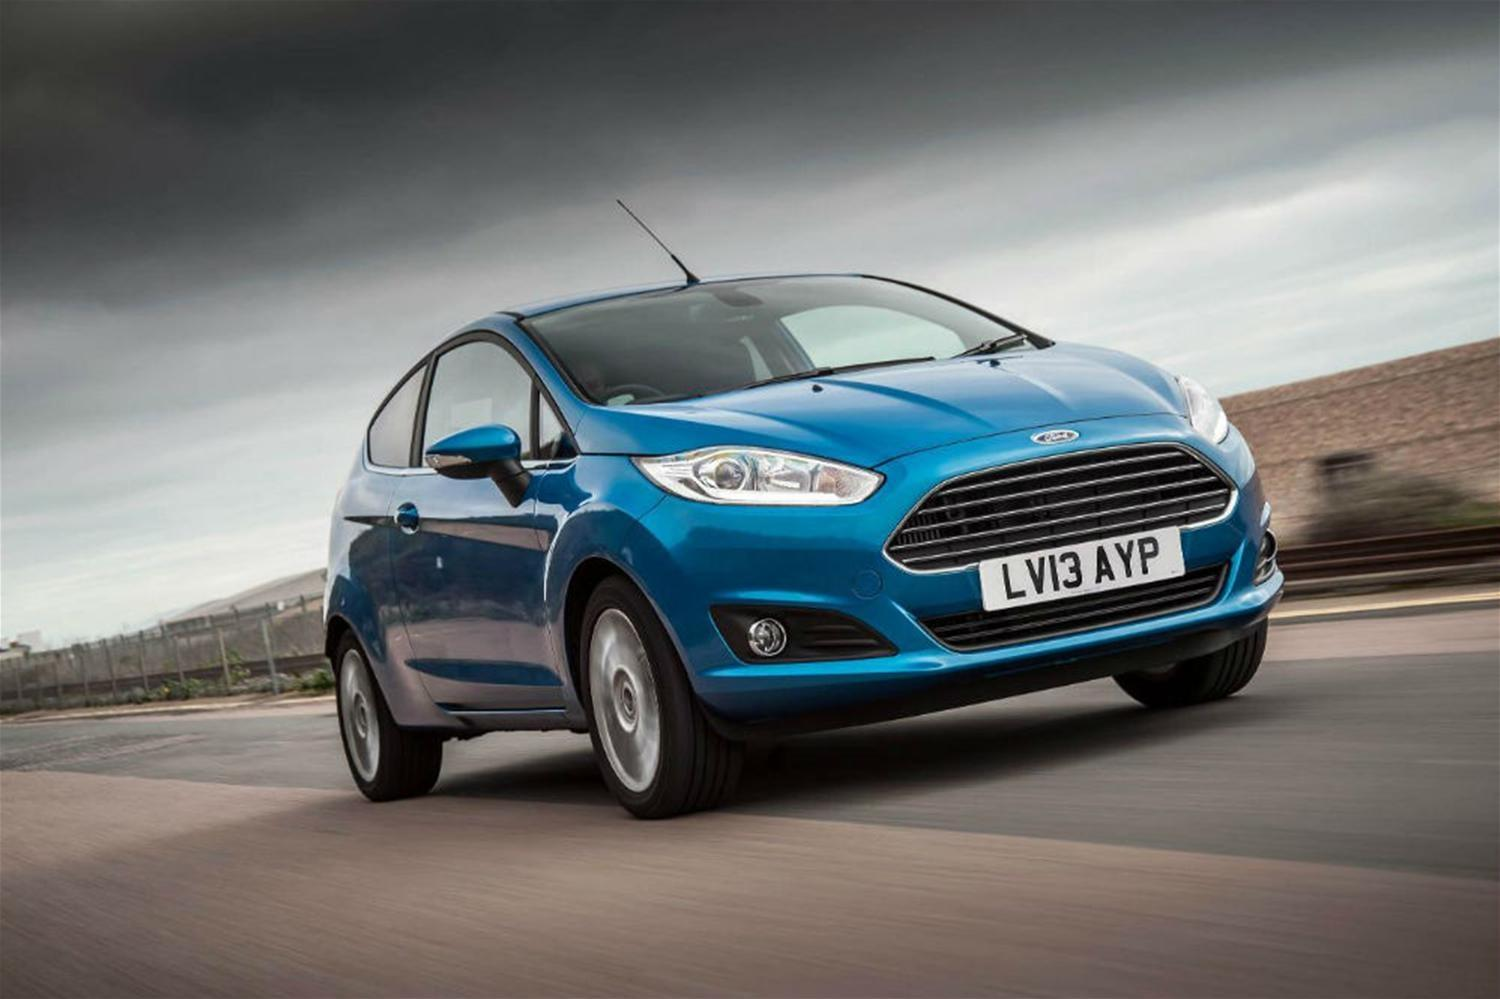 Best New Cars for Under 10K Pounds